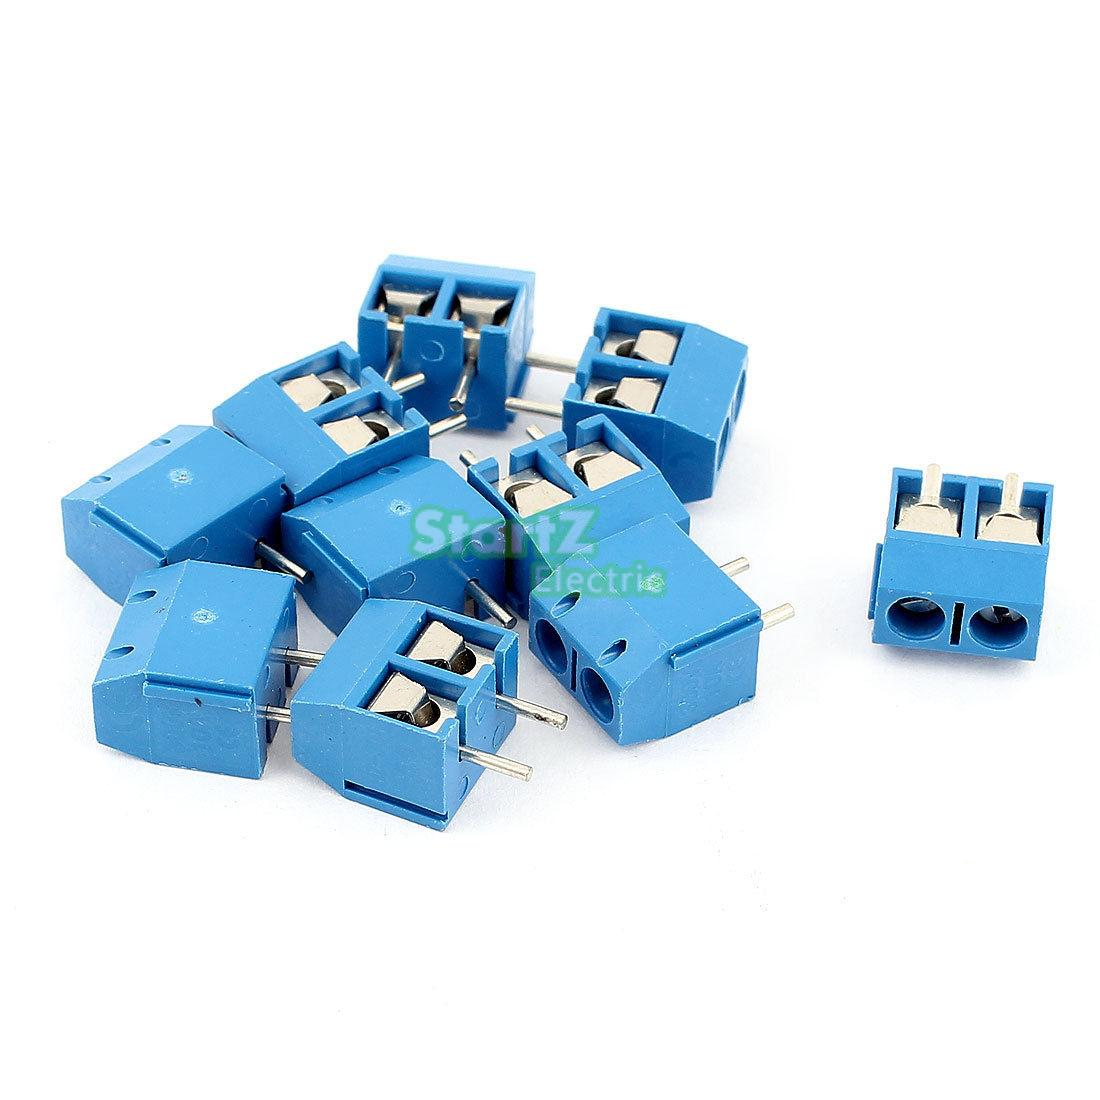 20 adet Düz Plug Vida PCB Terminal Bloğu Connector 5.08mm Pitch bule KF-301-2Pin